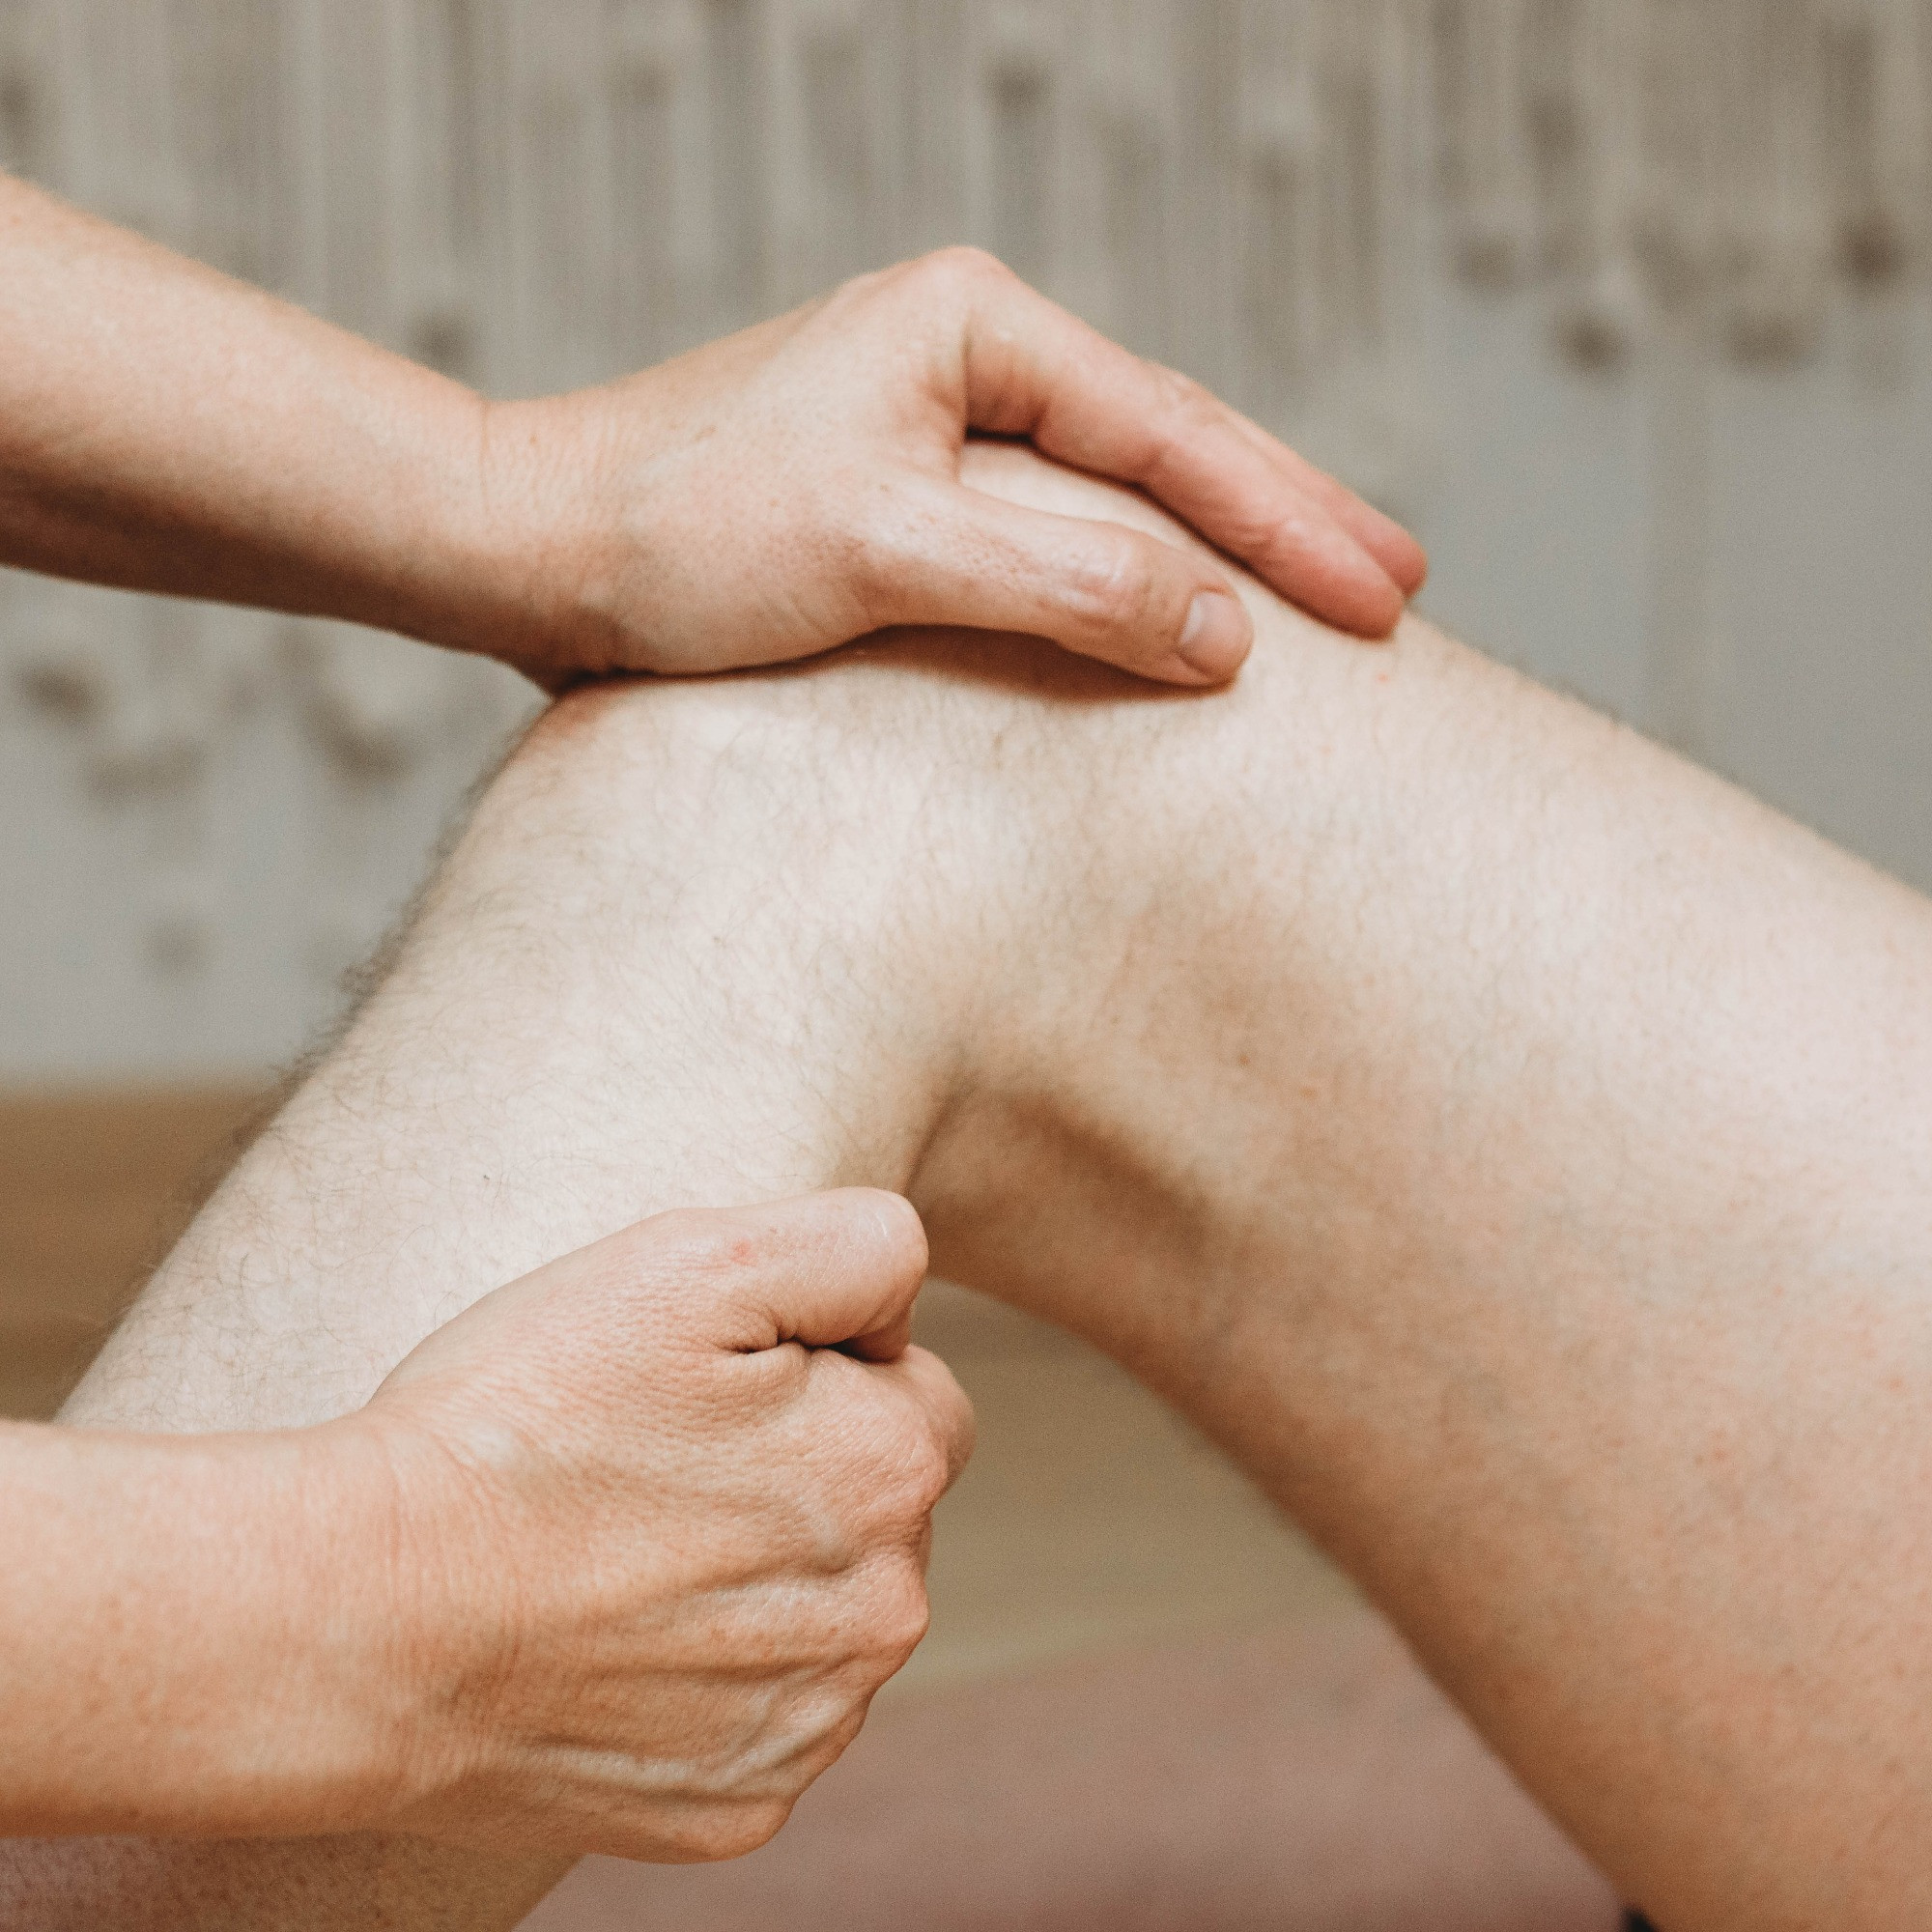 Therapeutic Massage and/or Movement